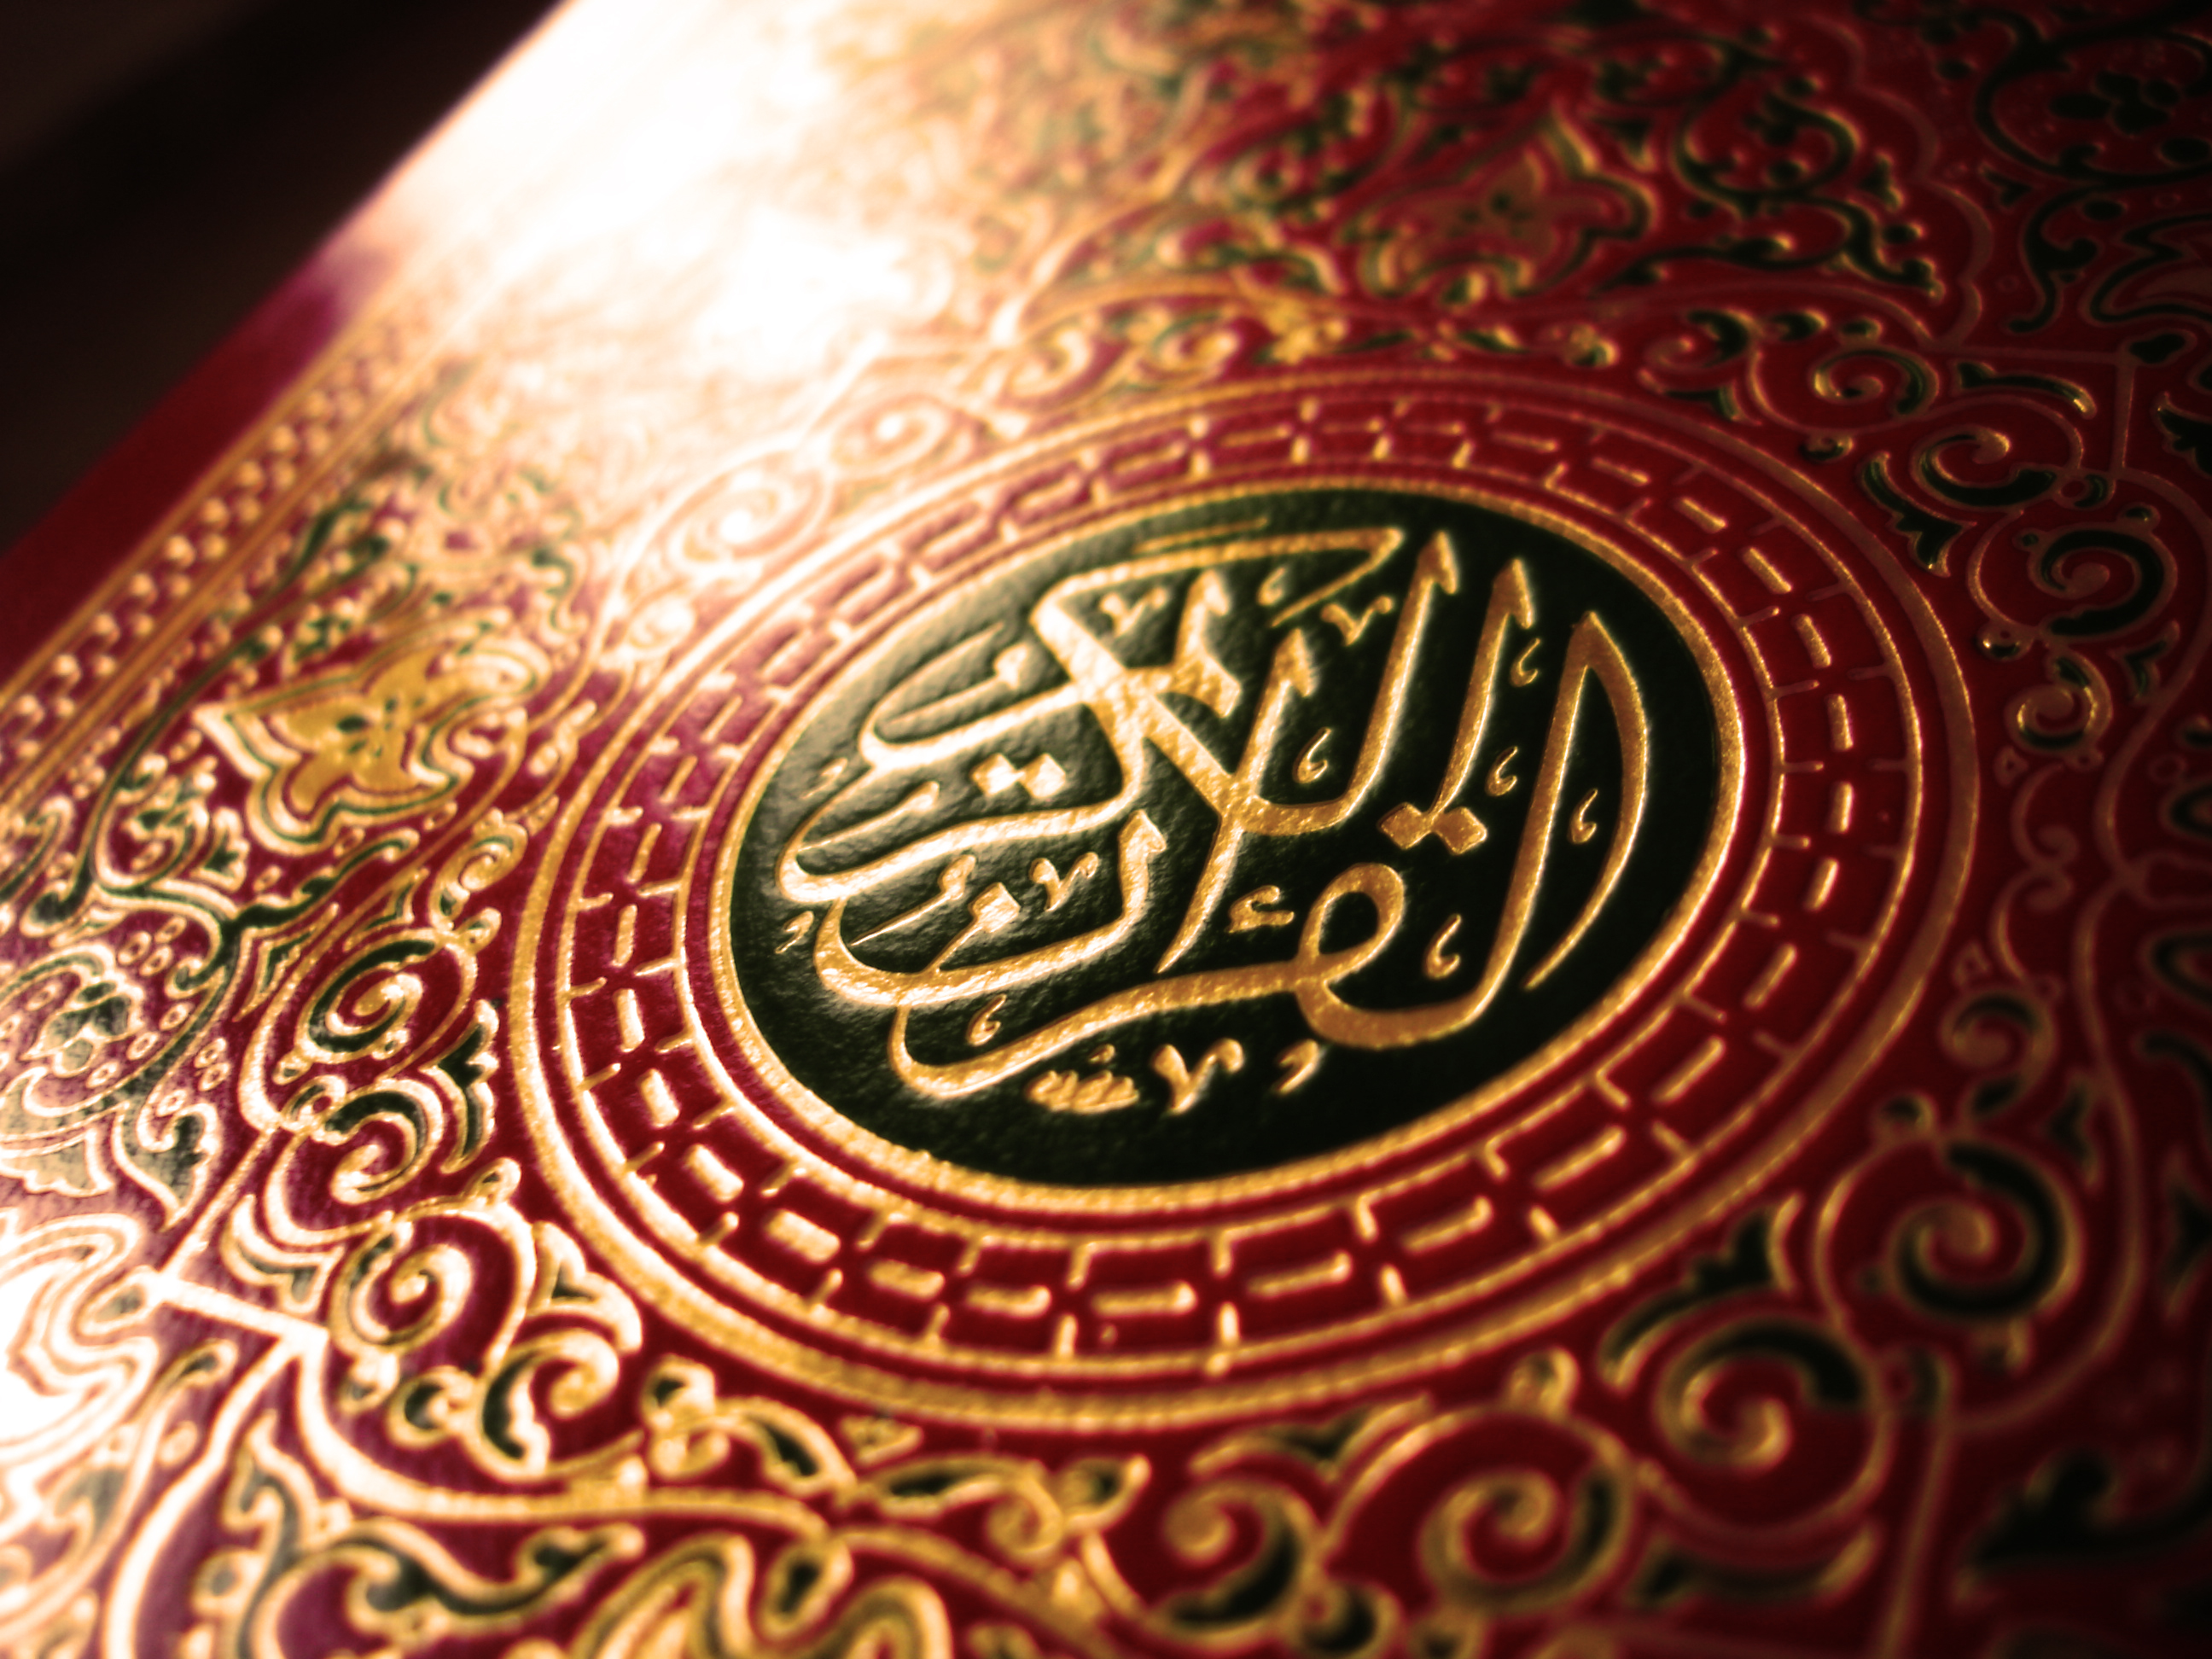 Description Quran cover.jpg